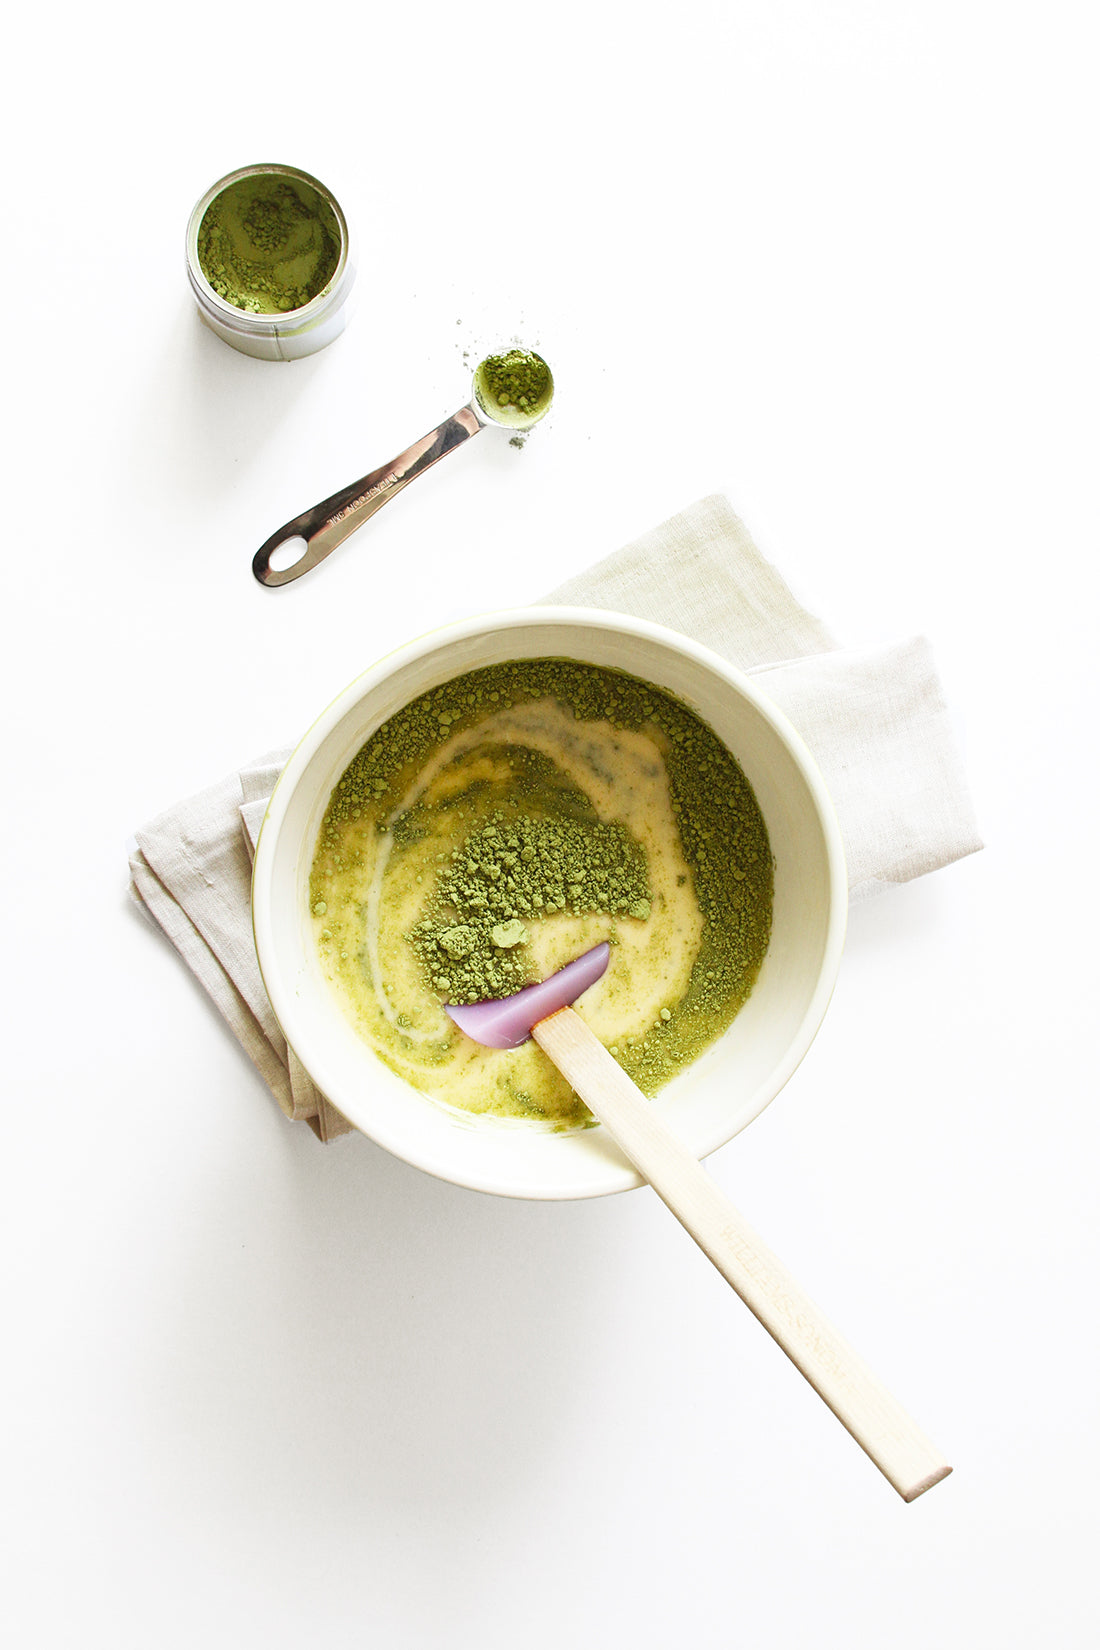 Image from above of matcha powder mixing into the batter of Miss Jones Baking Co Matcha Tea Cakes